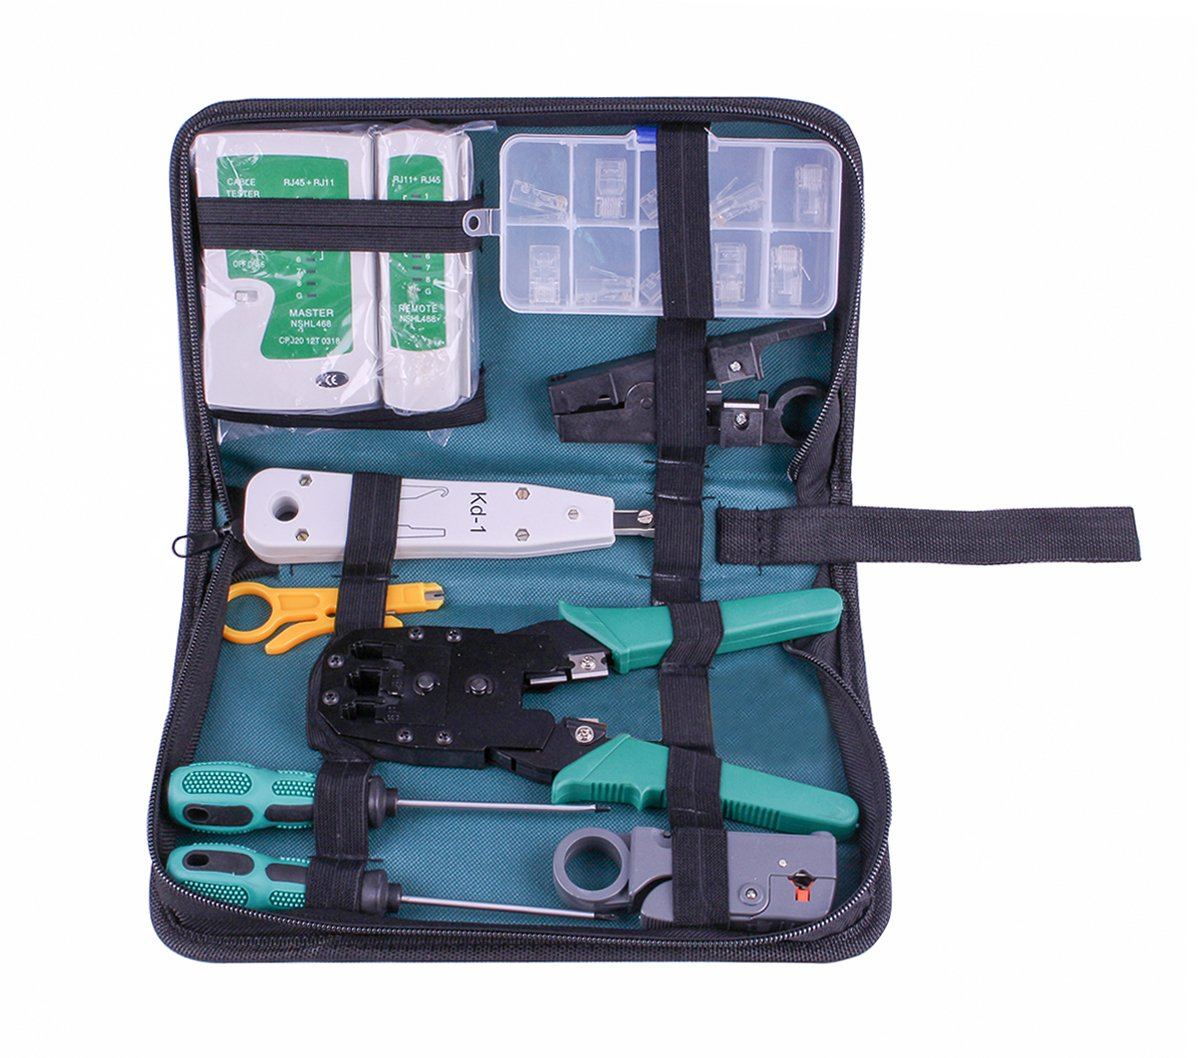 SIBO® NS-468 RJ45 RJ11 Multi-function Master And Remote Network Cable Tester Telephone Cable Tester Tool Kit SB-NS468